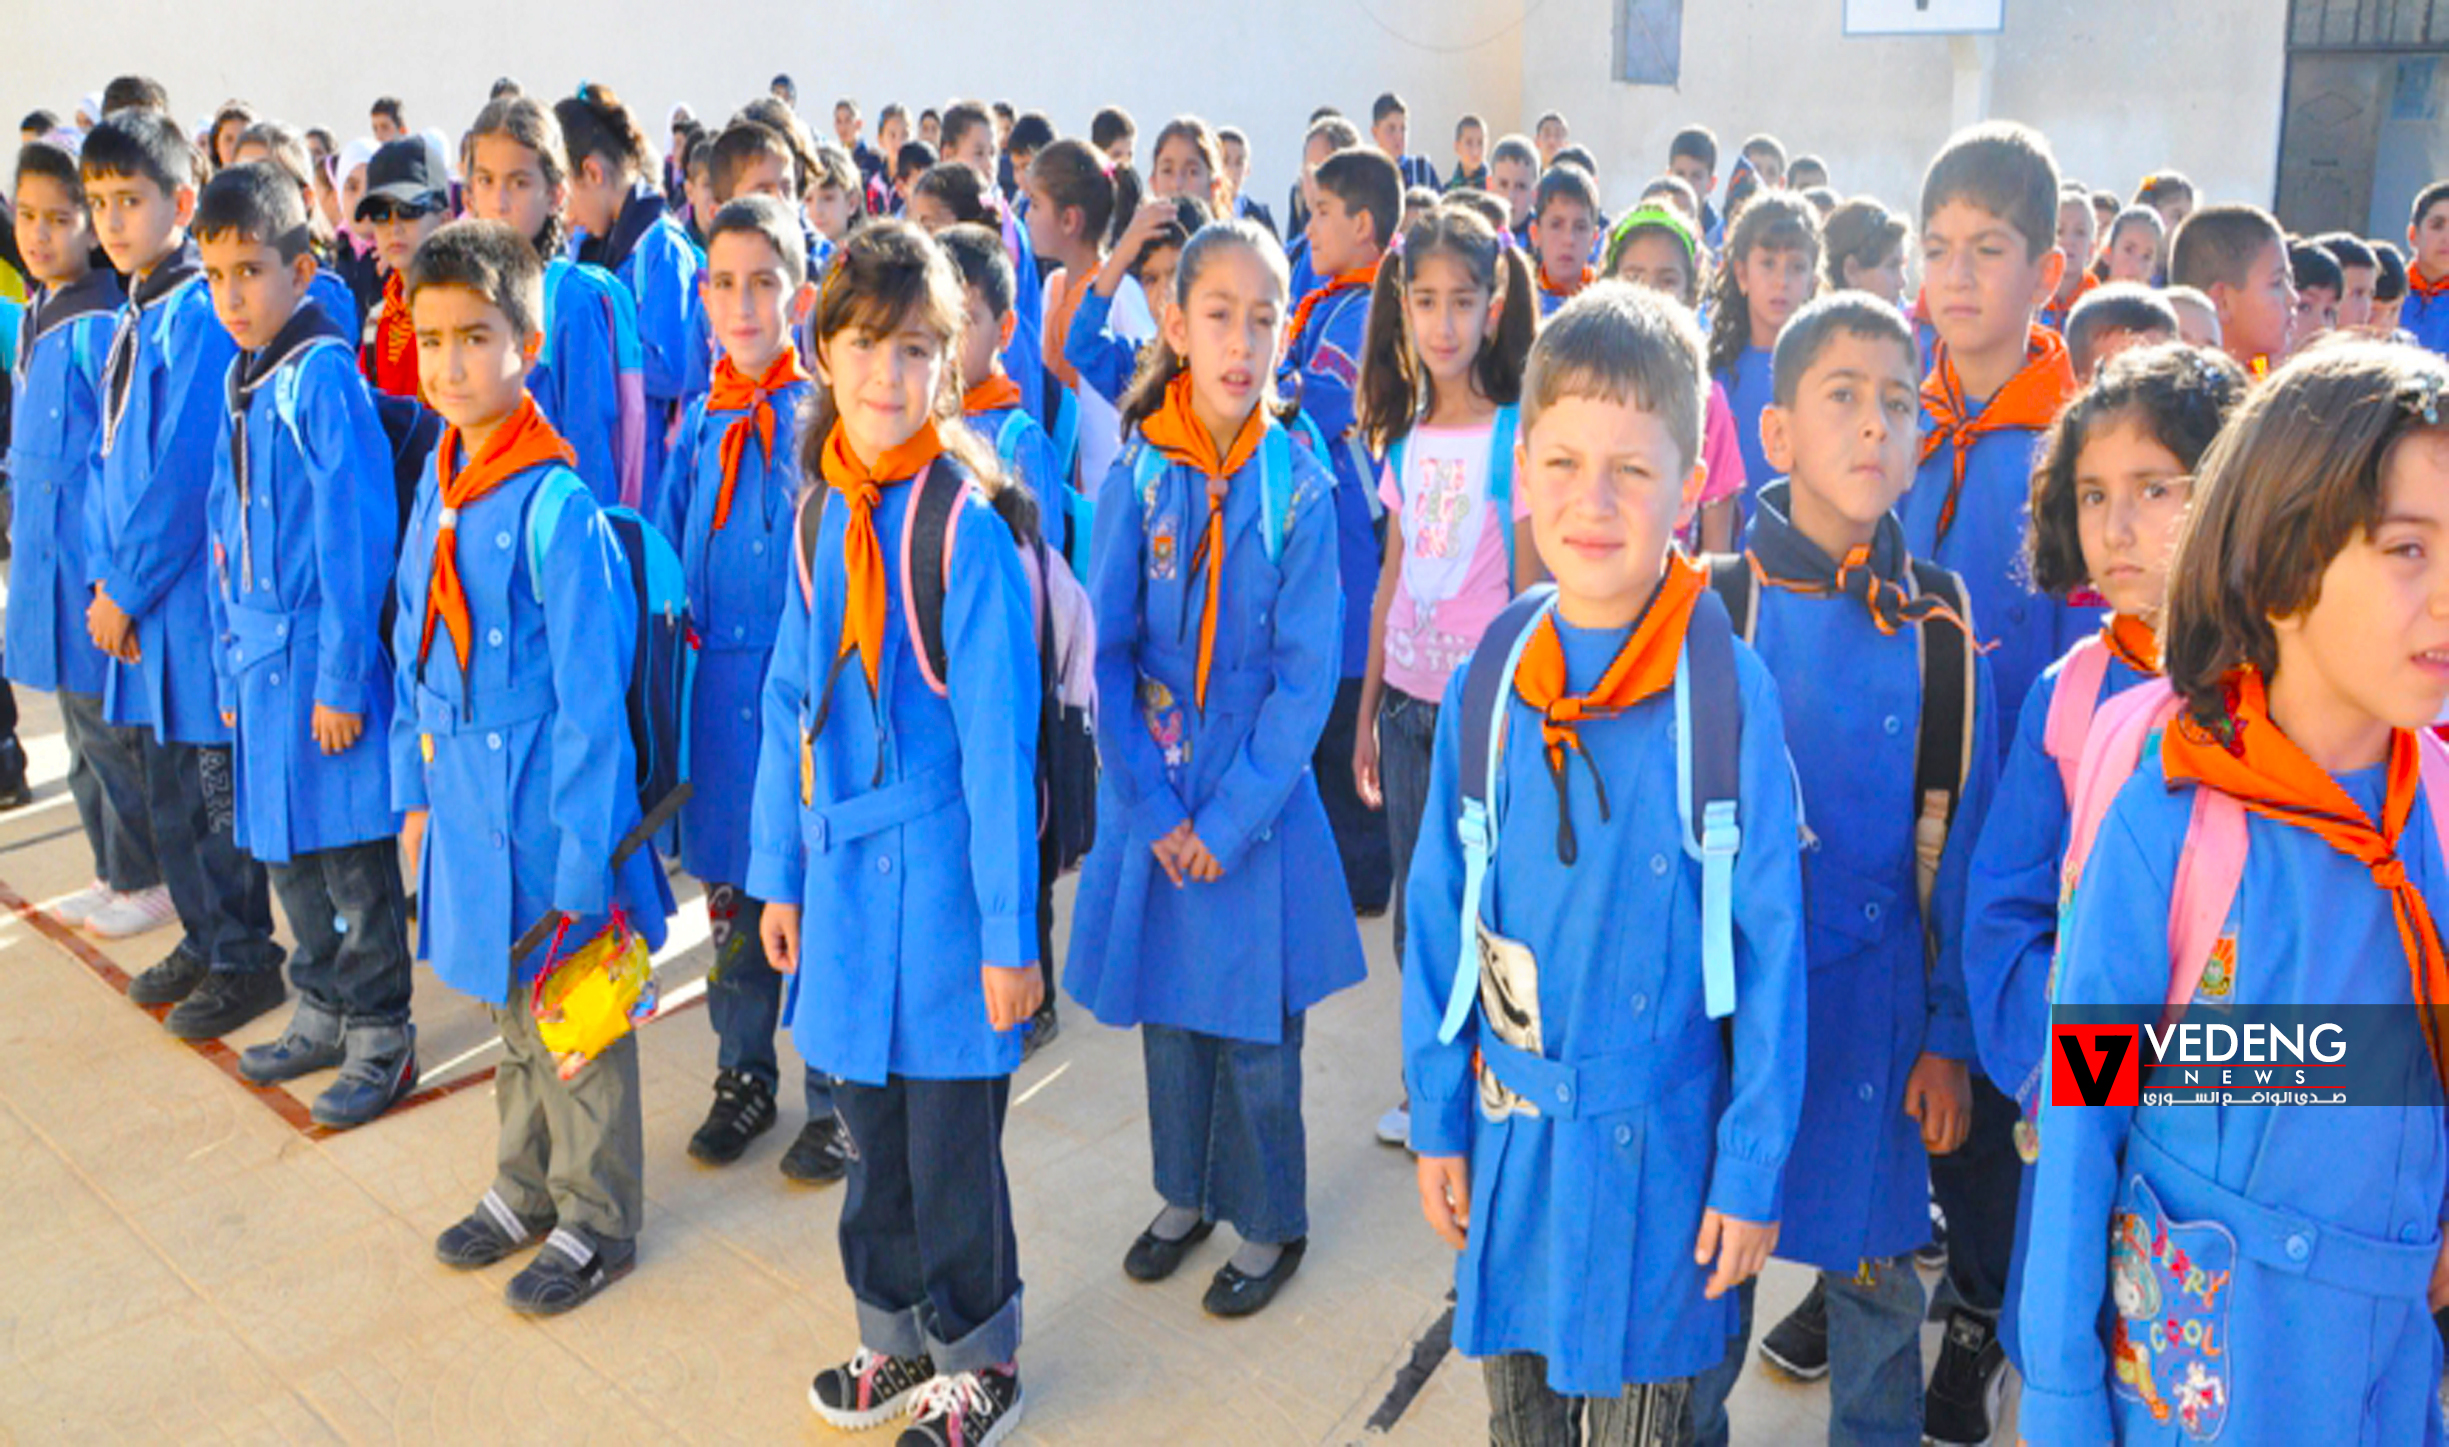 1fe4030263 Syrian families' budget is depleted in preparation for the first semester  of the new academic year – Vedeng